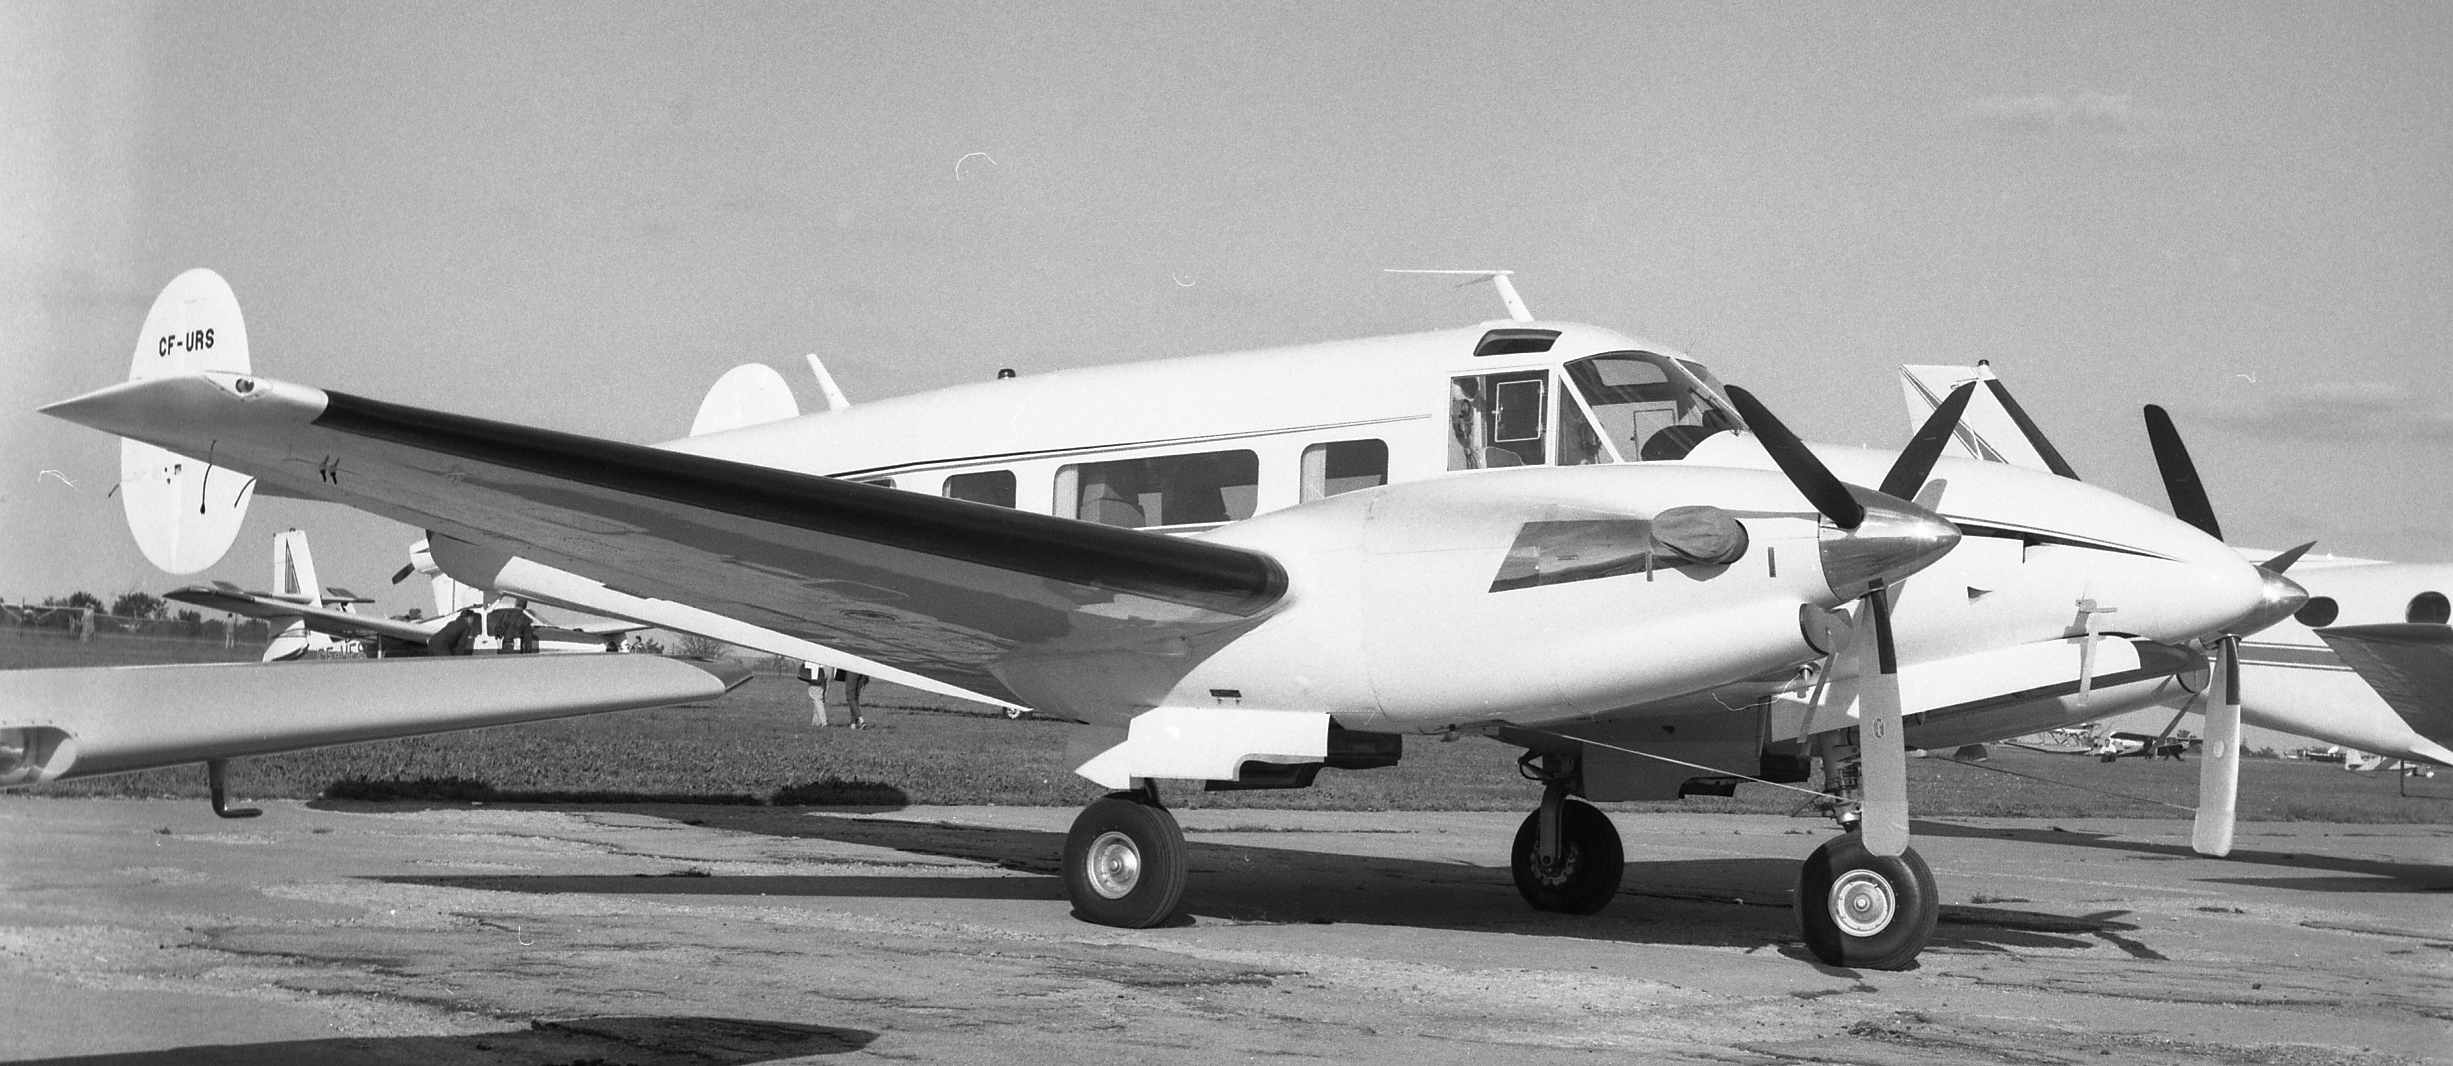 Blog 21 Turner Beech 18 CF-URS